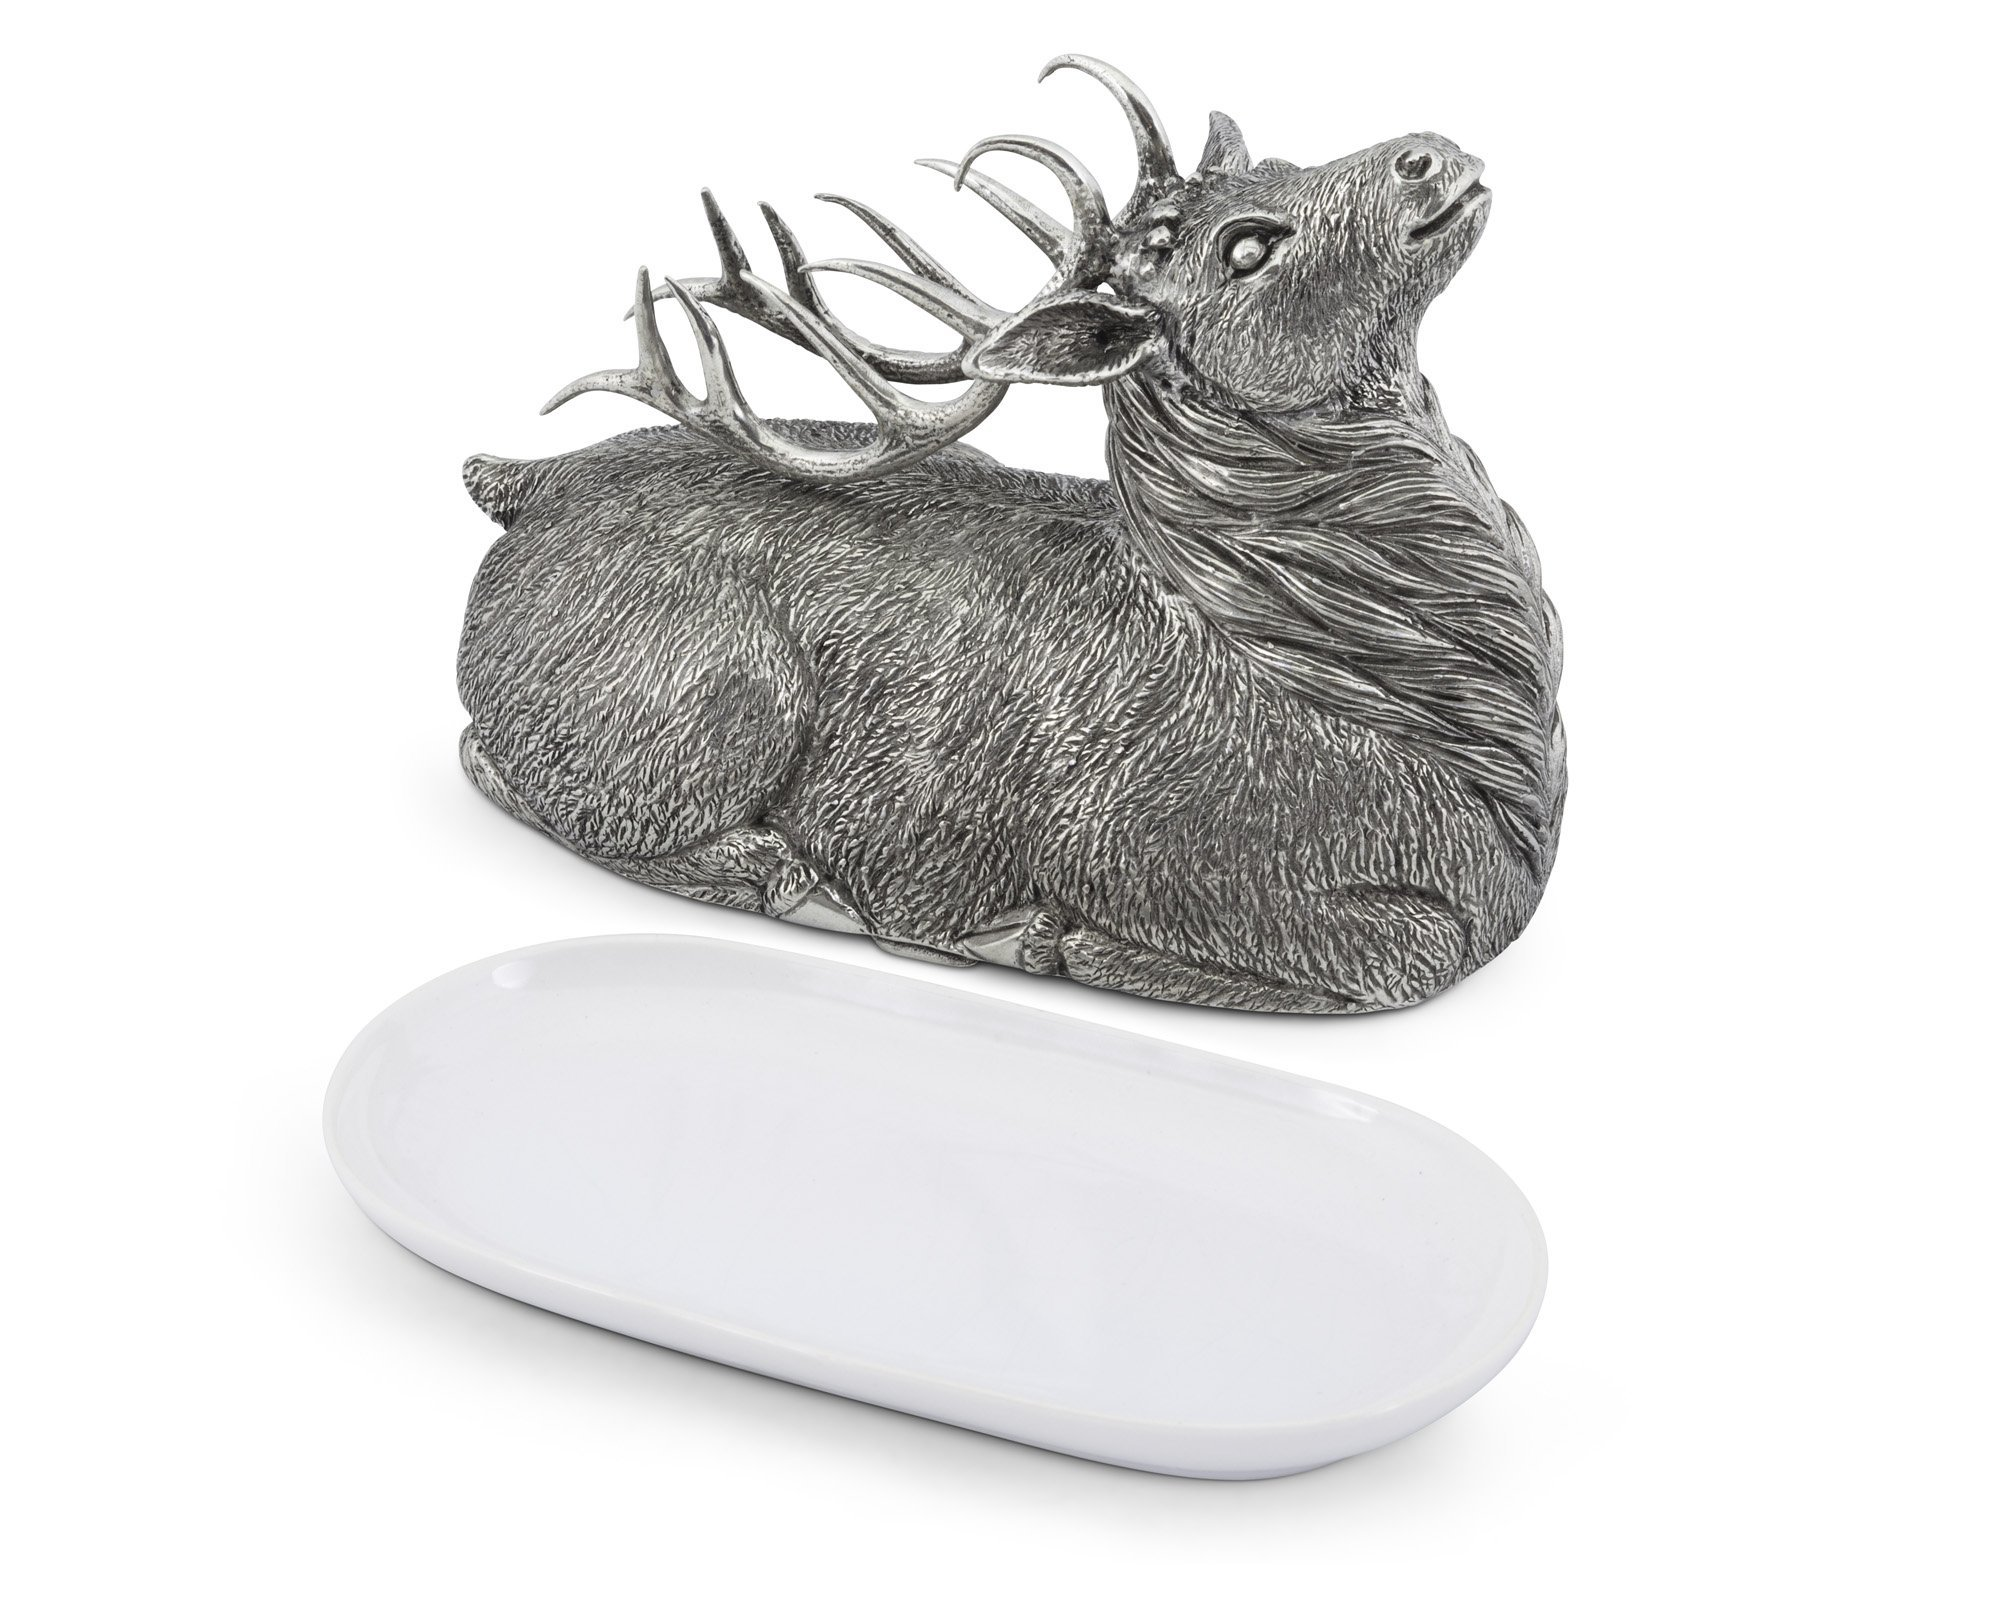 Vagabond House Pewter Stag Butter Cream Cheese Dish 8''Long x 3.5'' W x 5''Tall